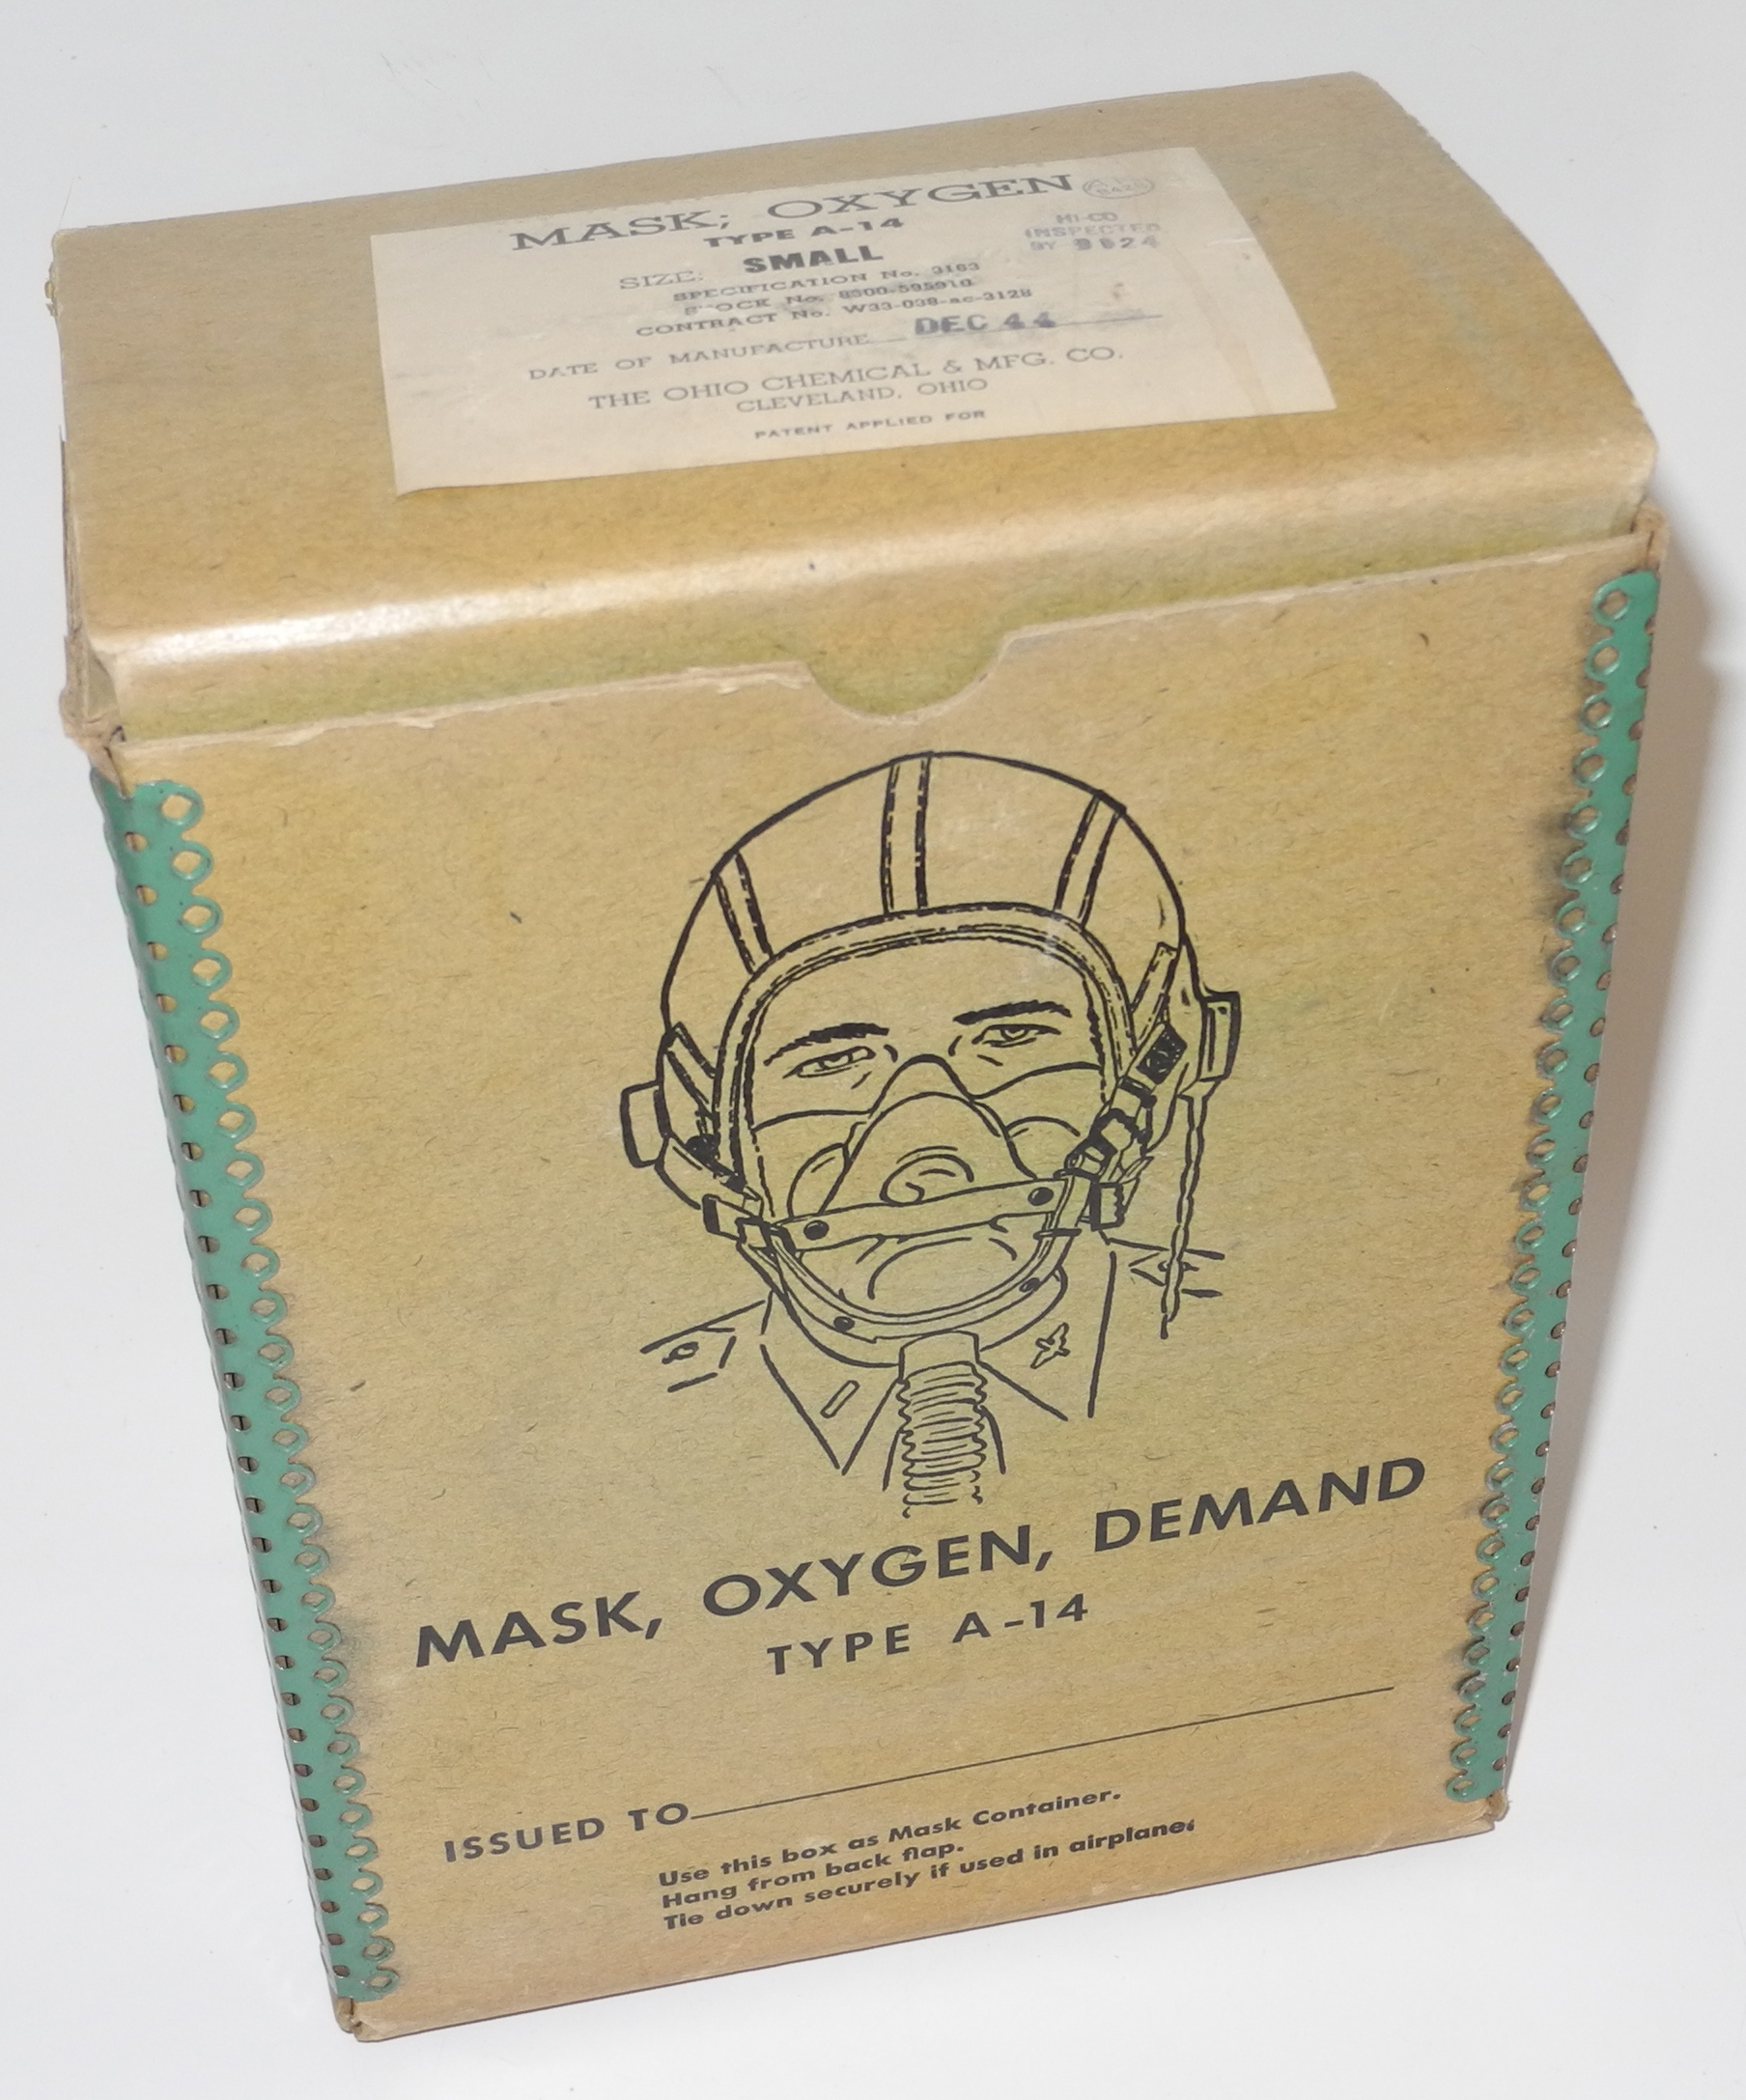 AAF A-14 oxygen mask boxed